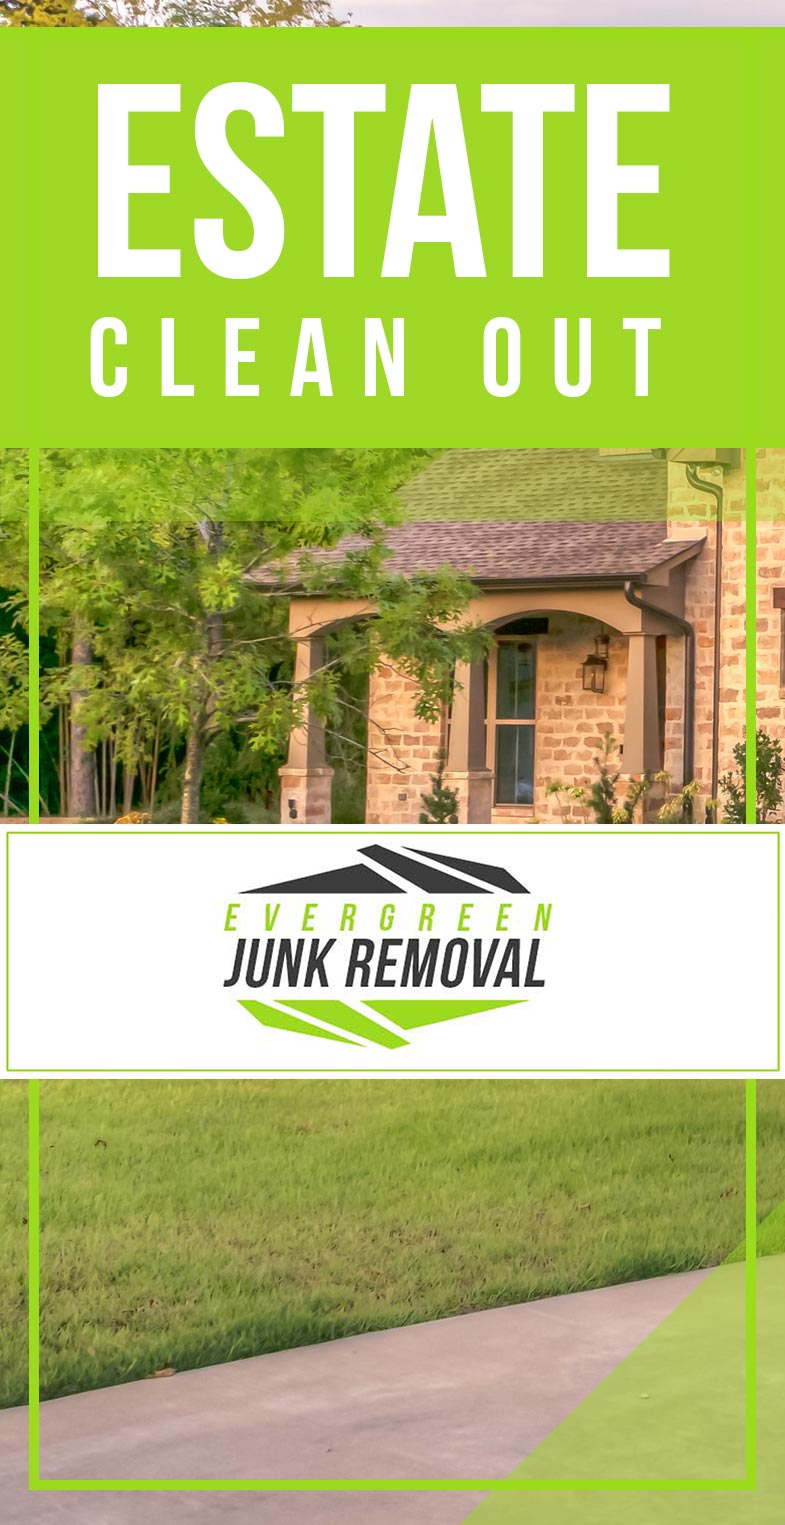 Junk Removal Loxahatchee Groves Estate Clean Out